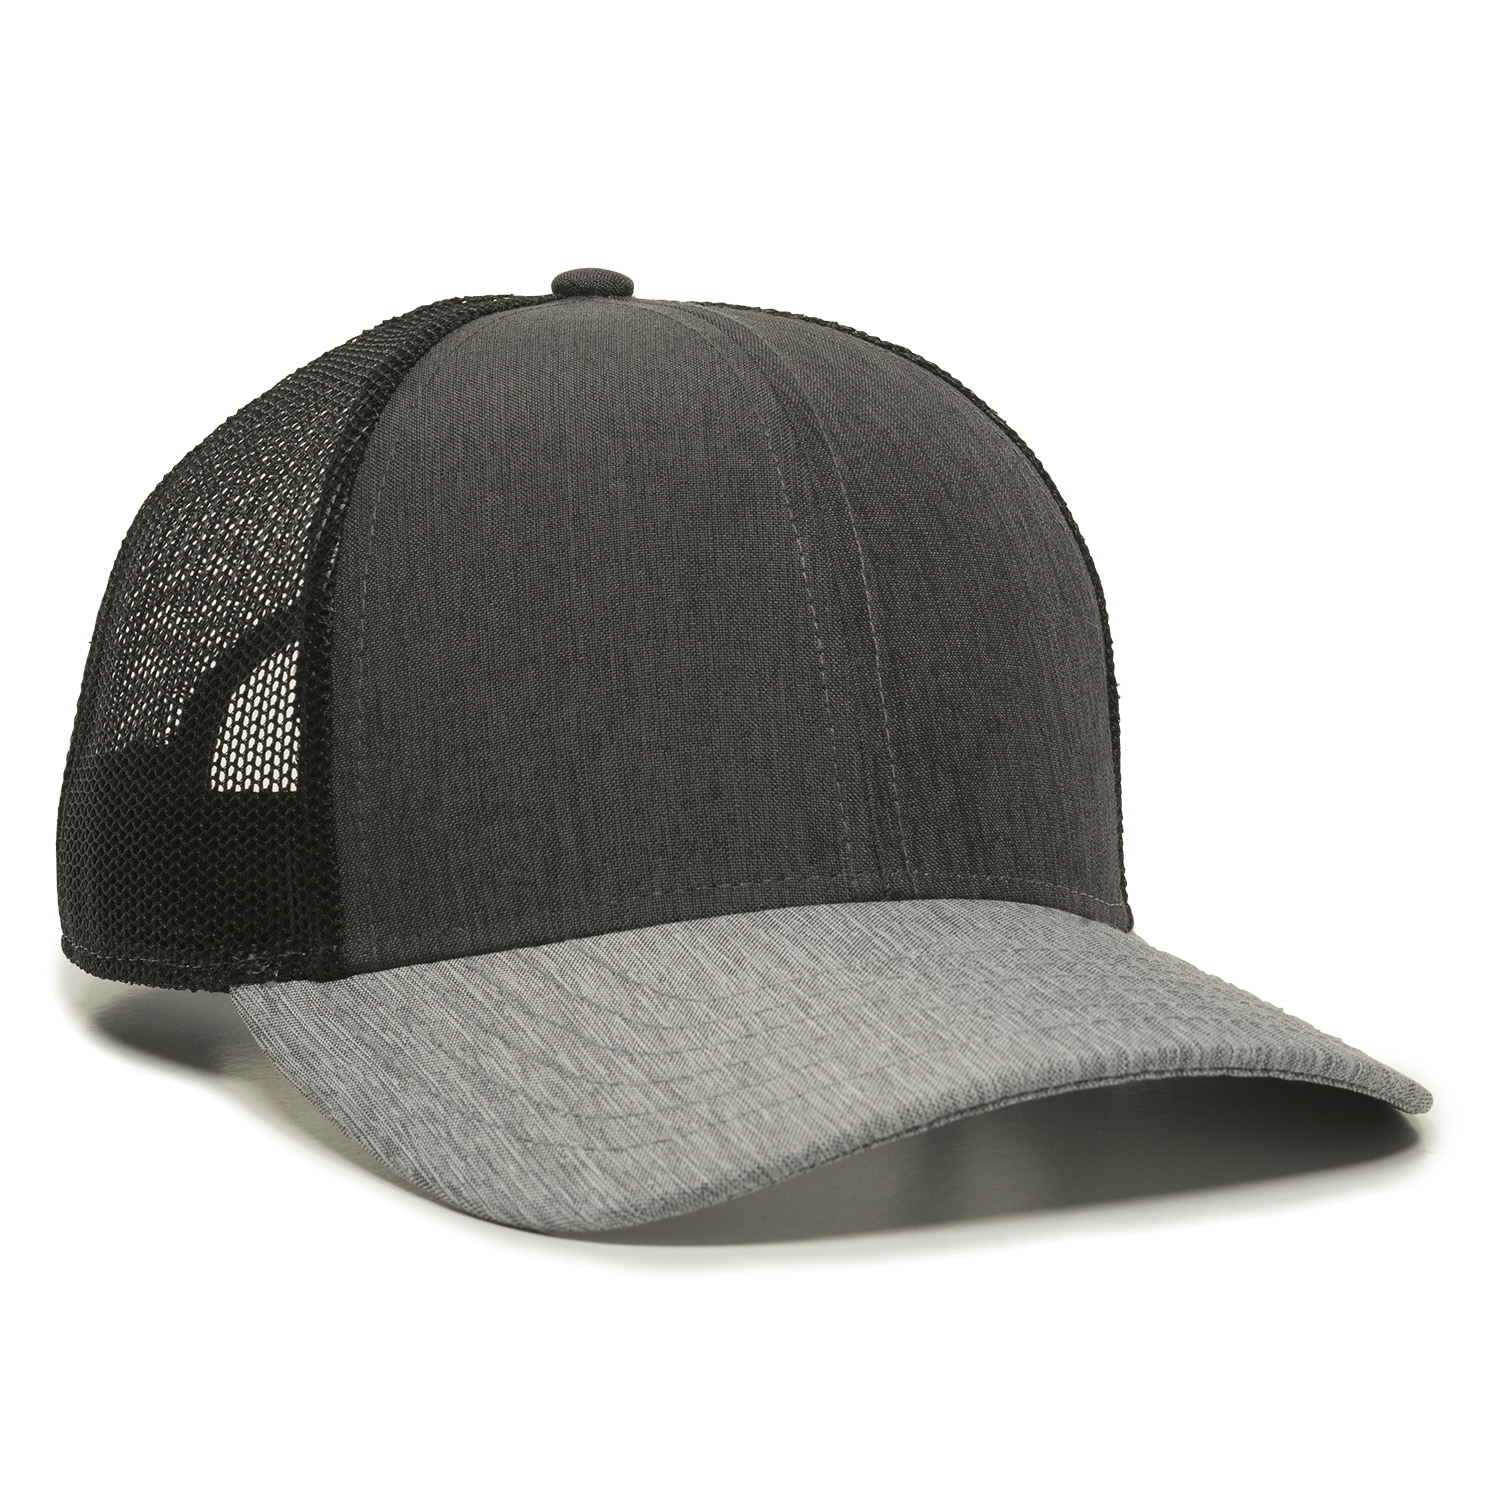 Heathered Charcoal/Black/Heathered Grey